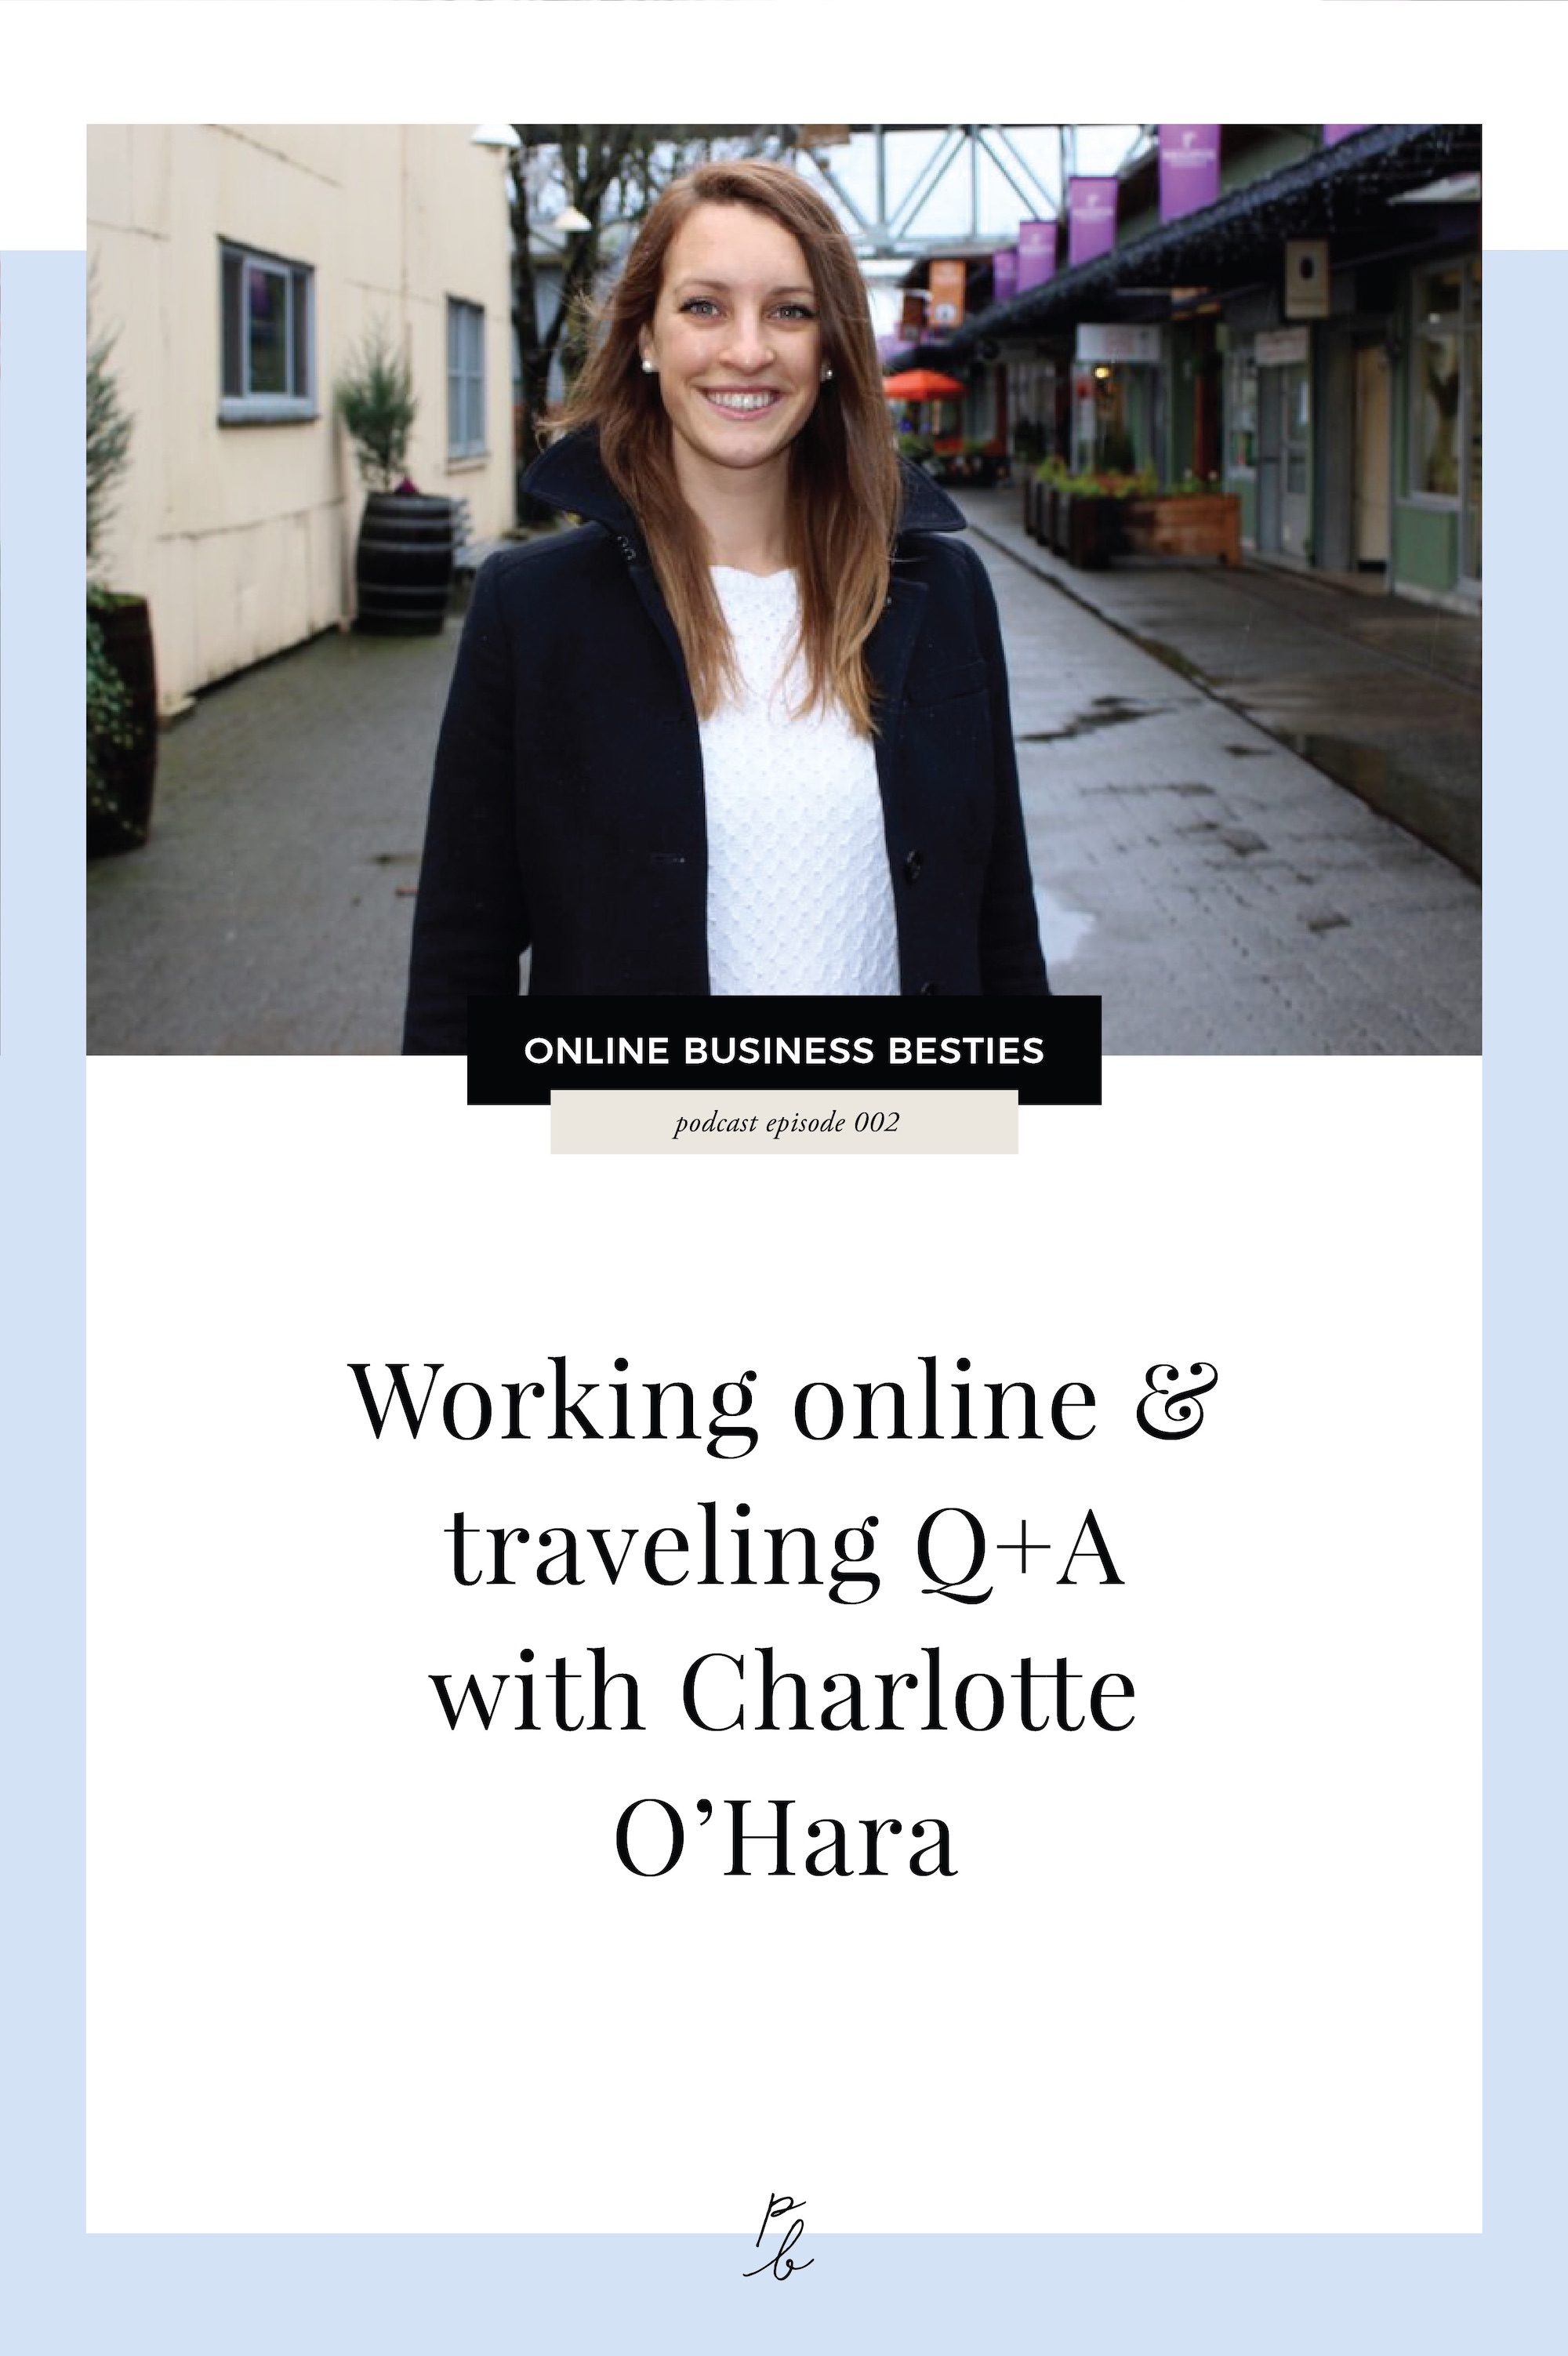 working online & traveling Q+A with charlotte o'hara.jpg